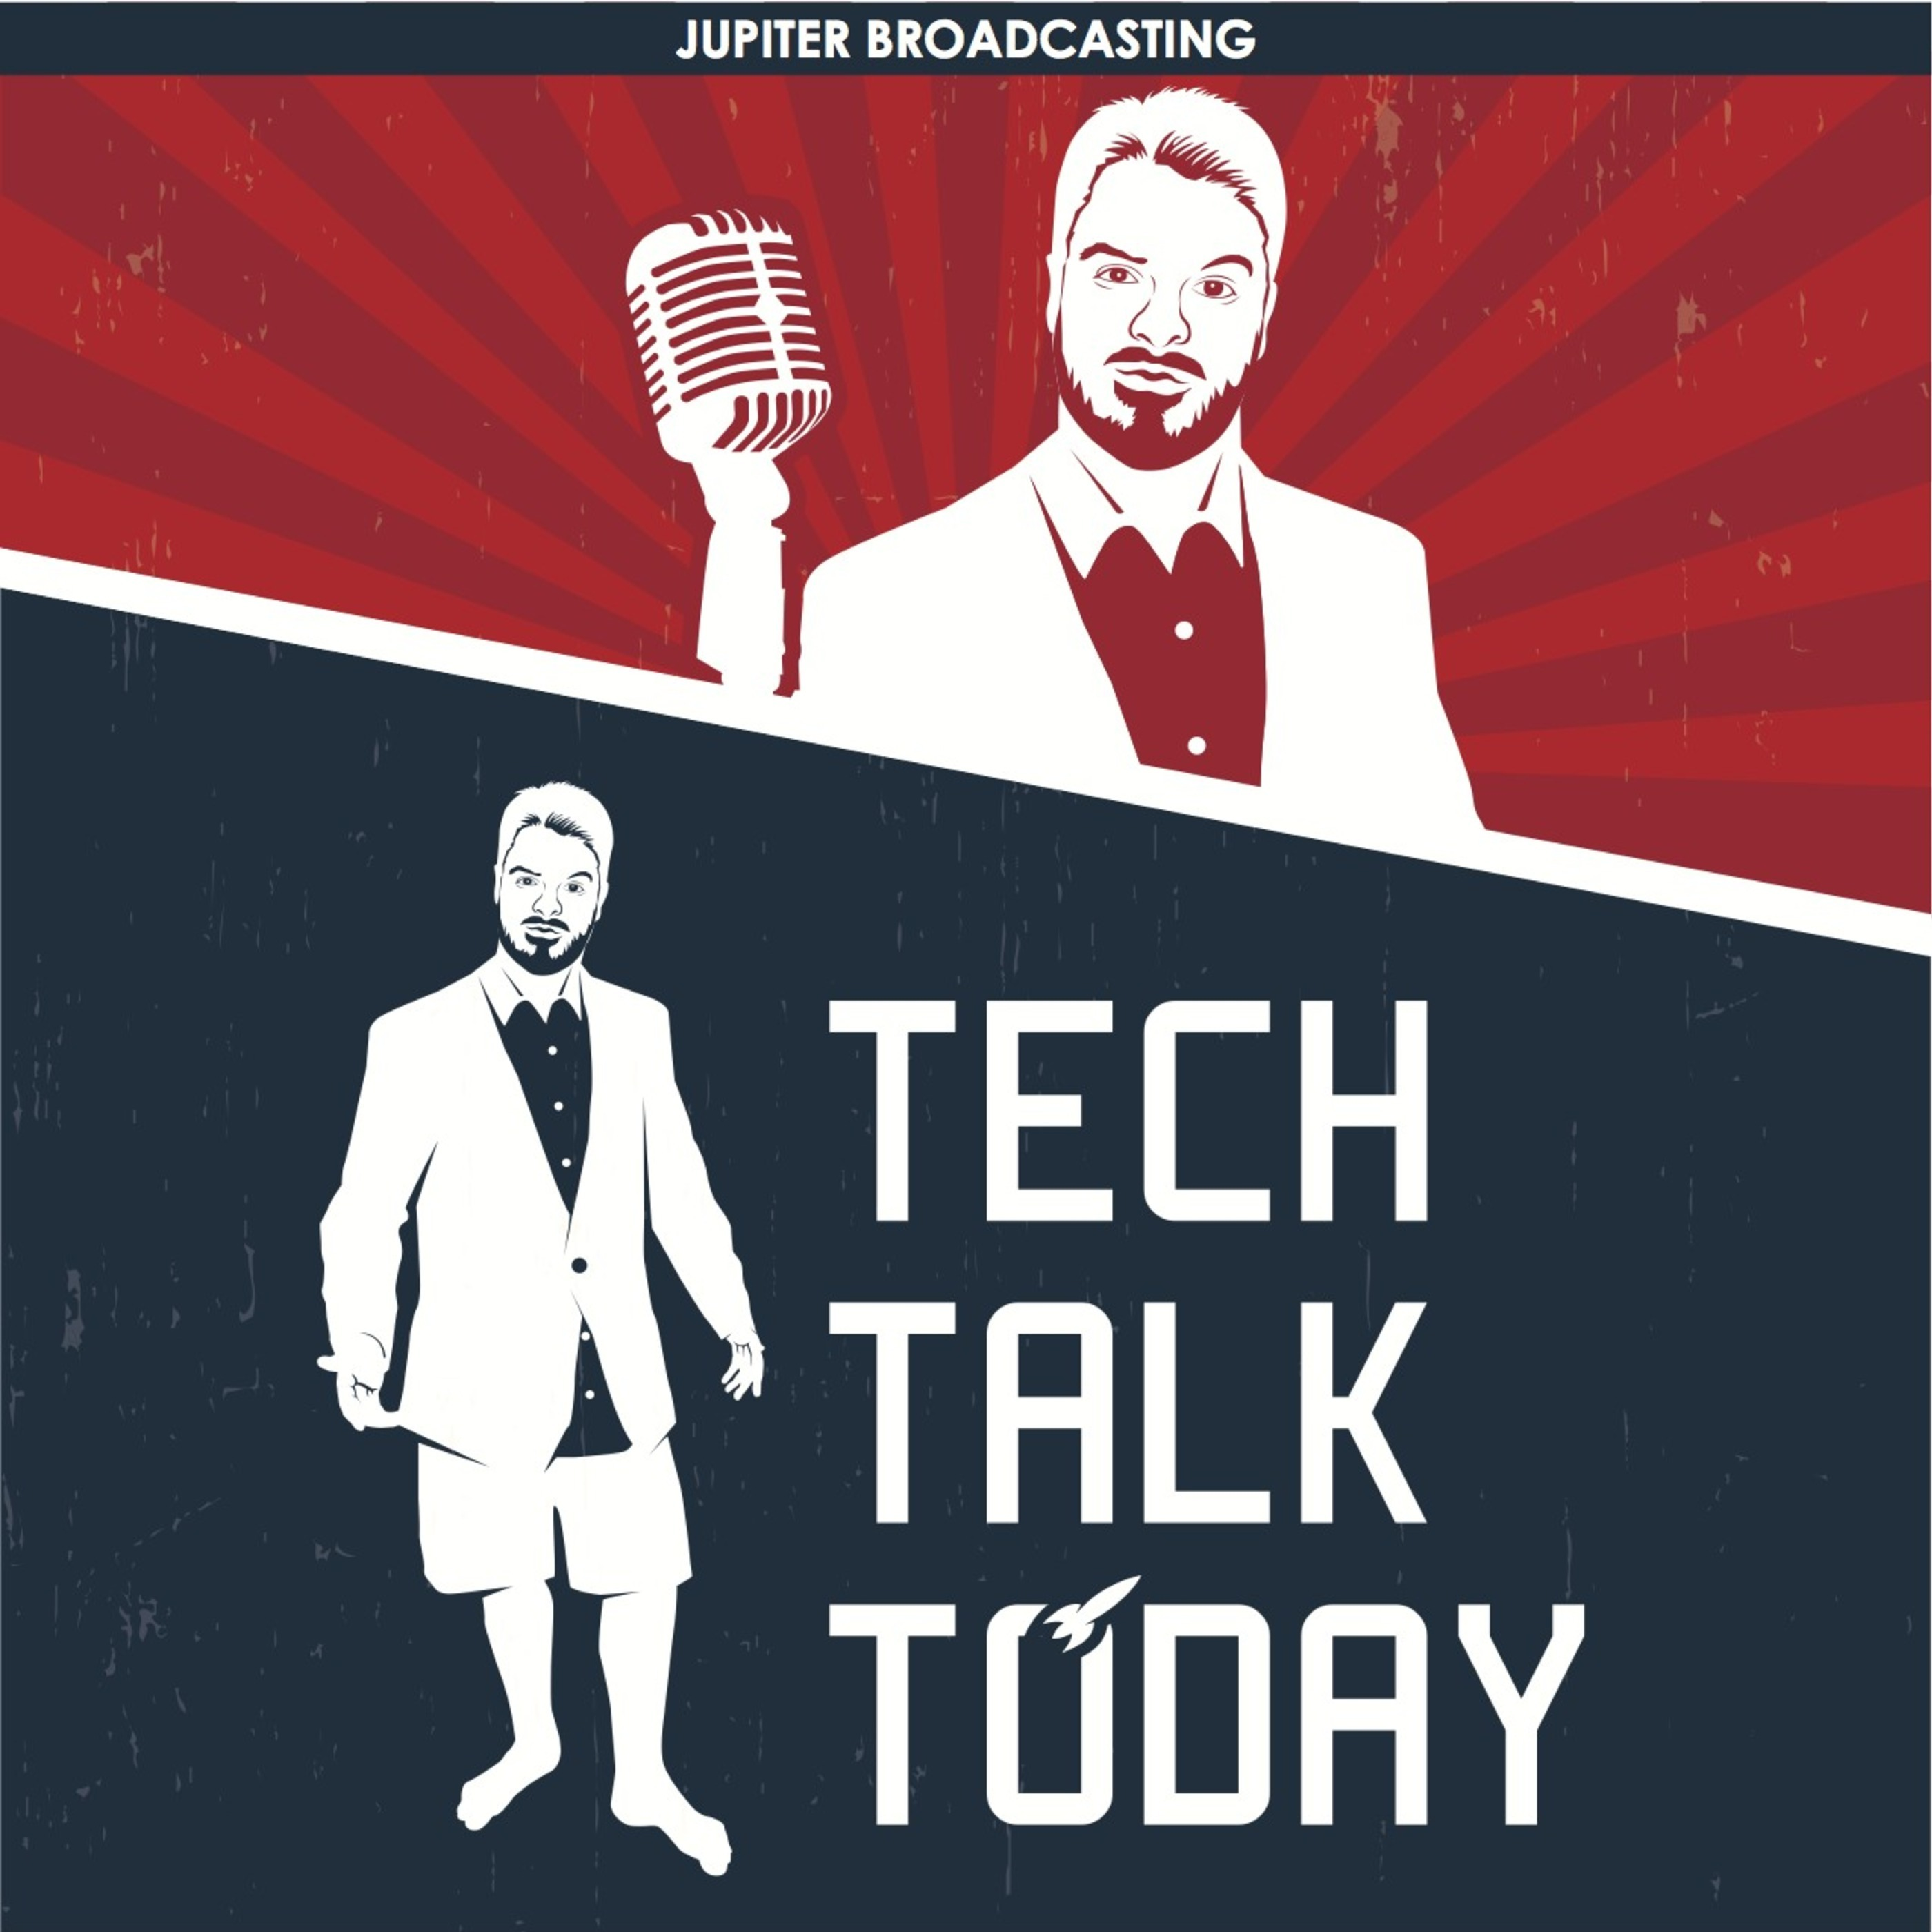 Episode 15: M is for Monopoly | Tech Talk Today 168